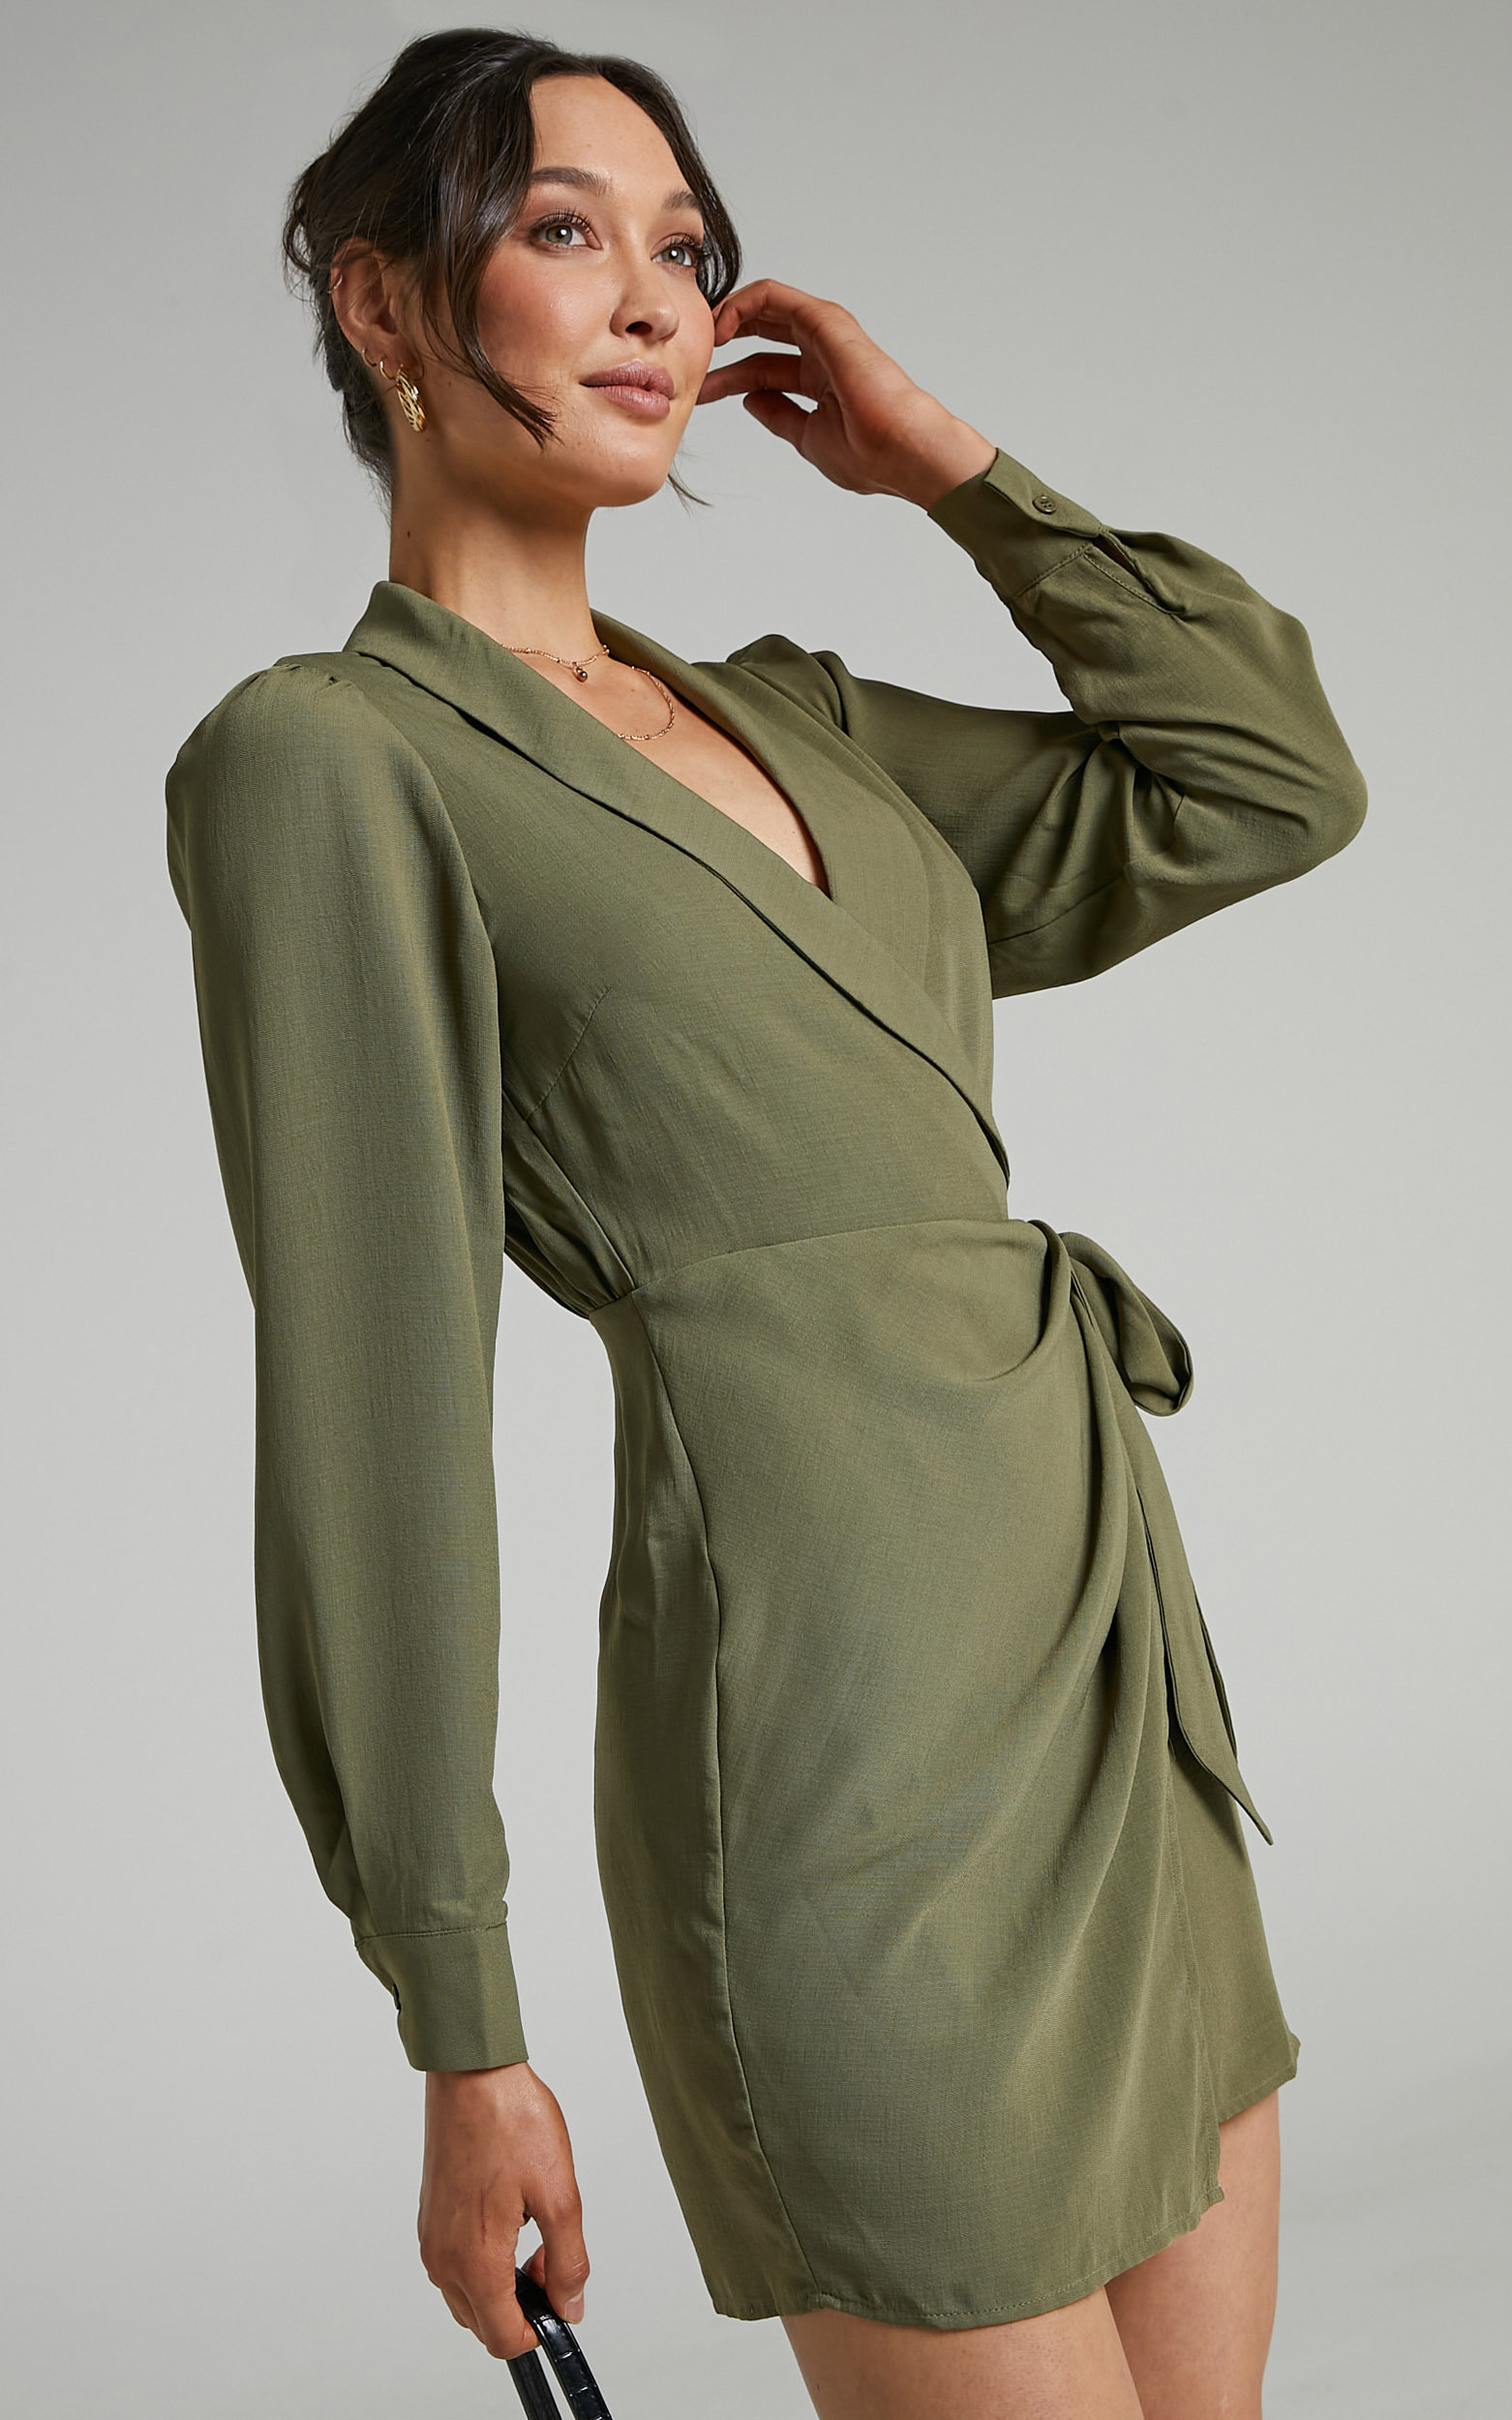 Immogen Mini Fixed Wrap Dress in Khaki - 04, GRN1, hi-res image number null